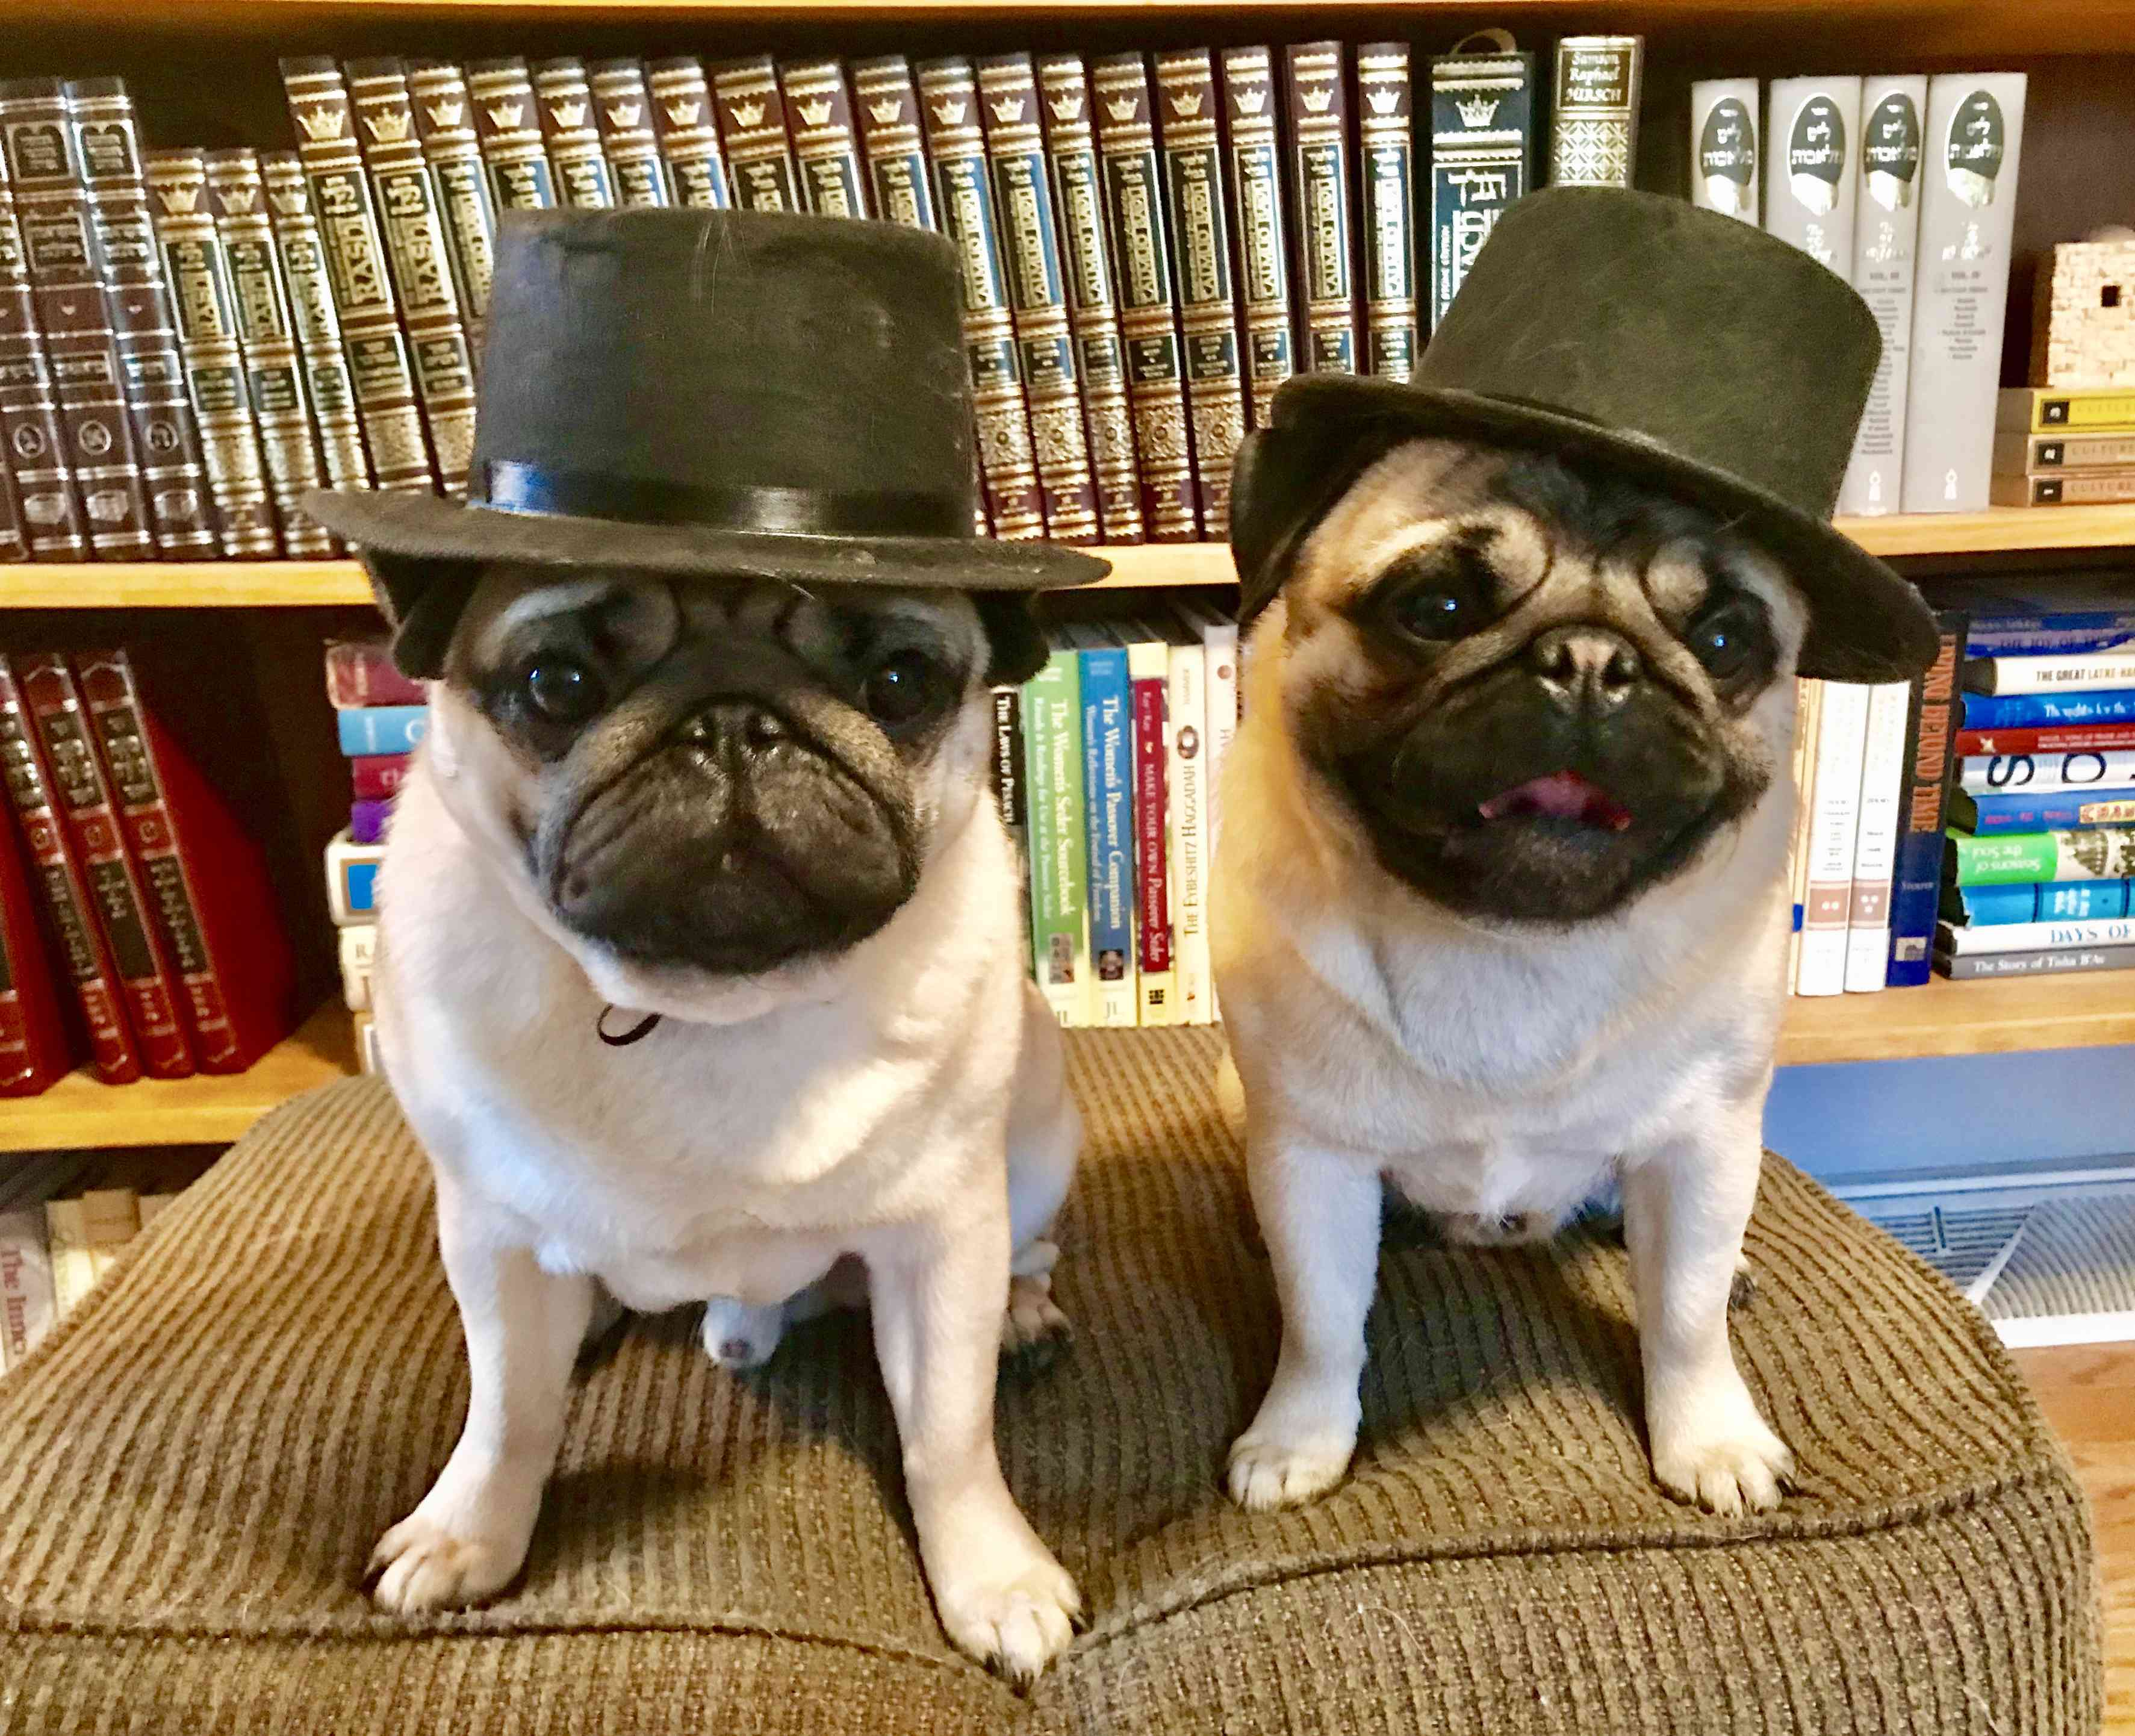 Fergus and Spike ... or is it Spike and Fergus?